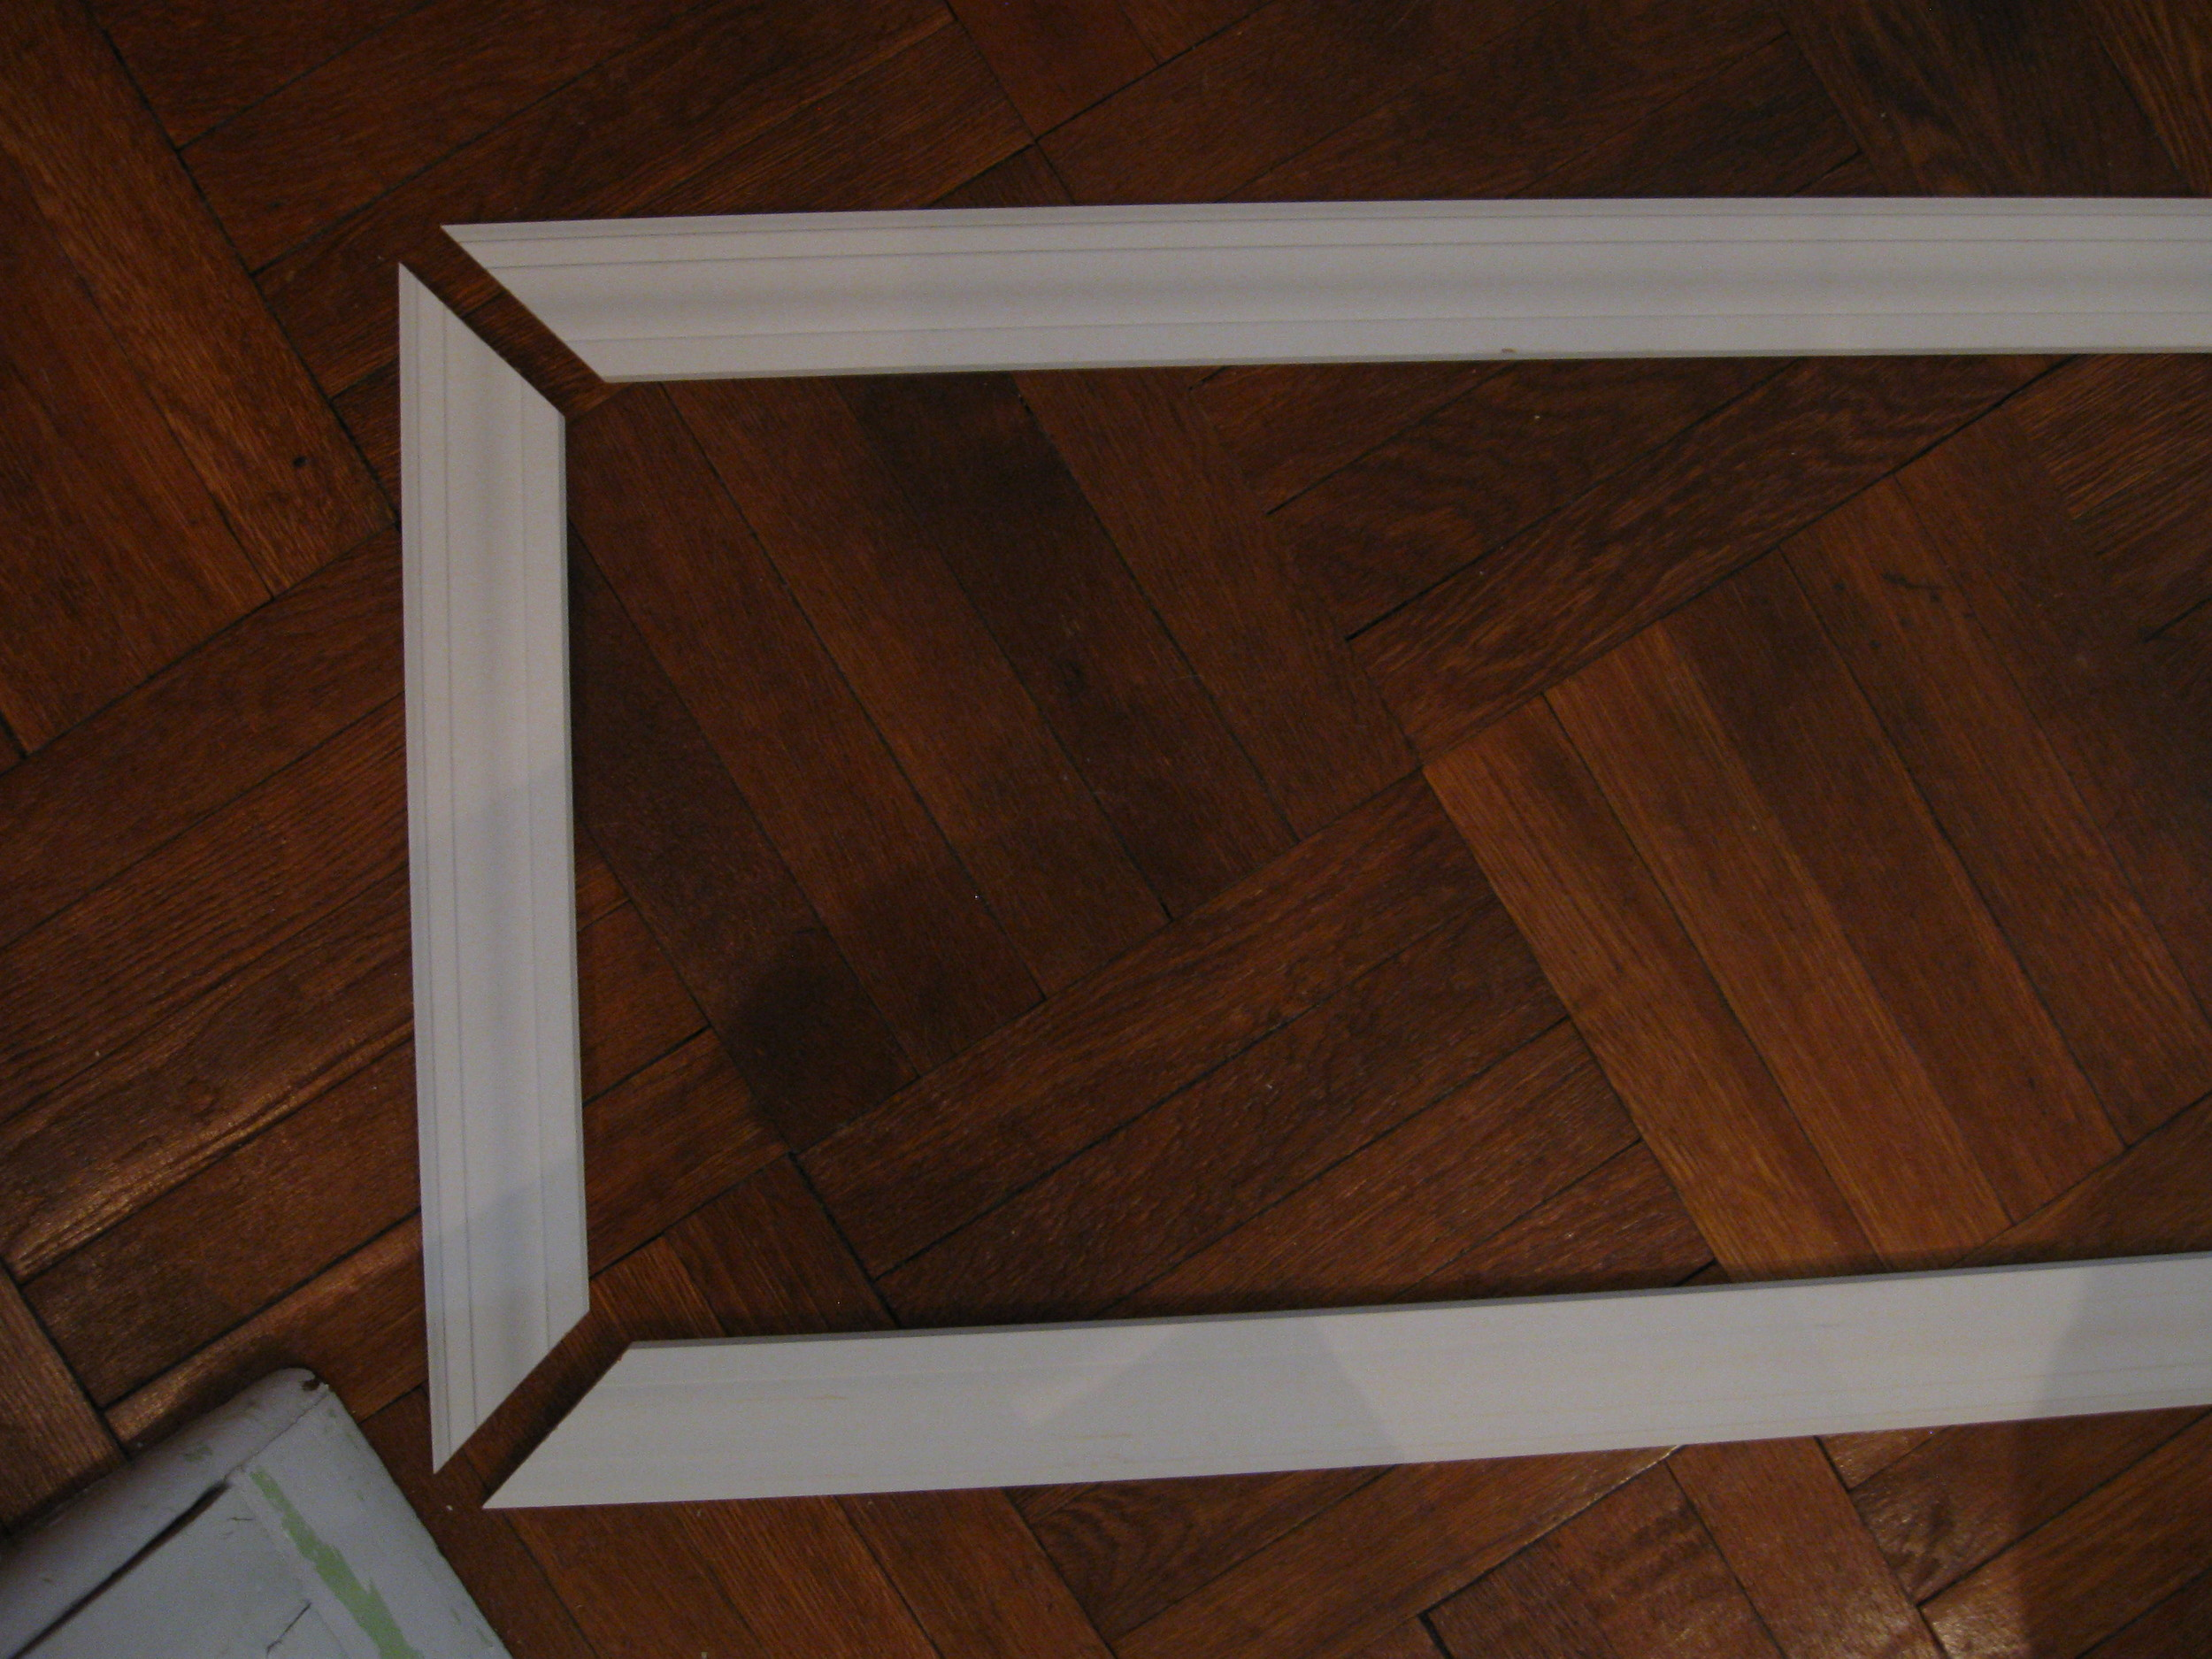 White wooden moulding that will frame bulletin board